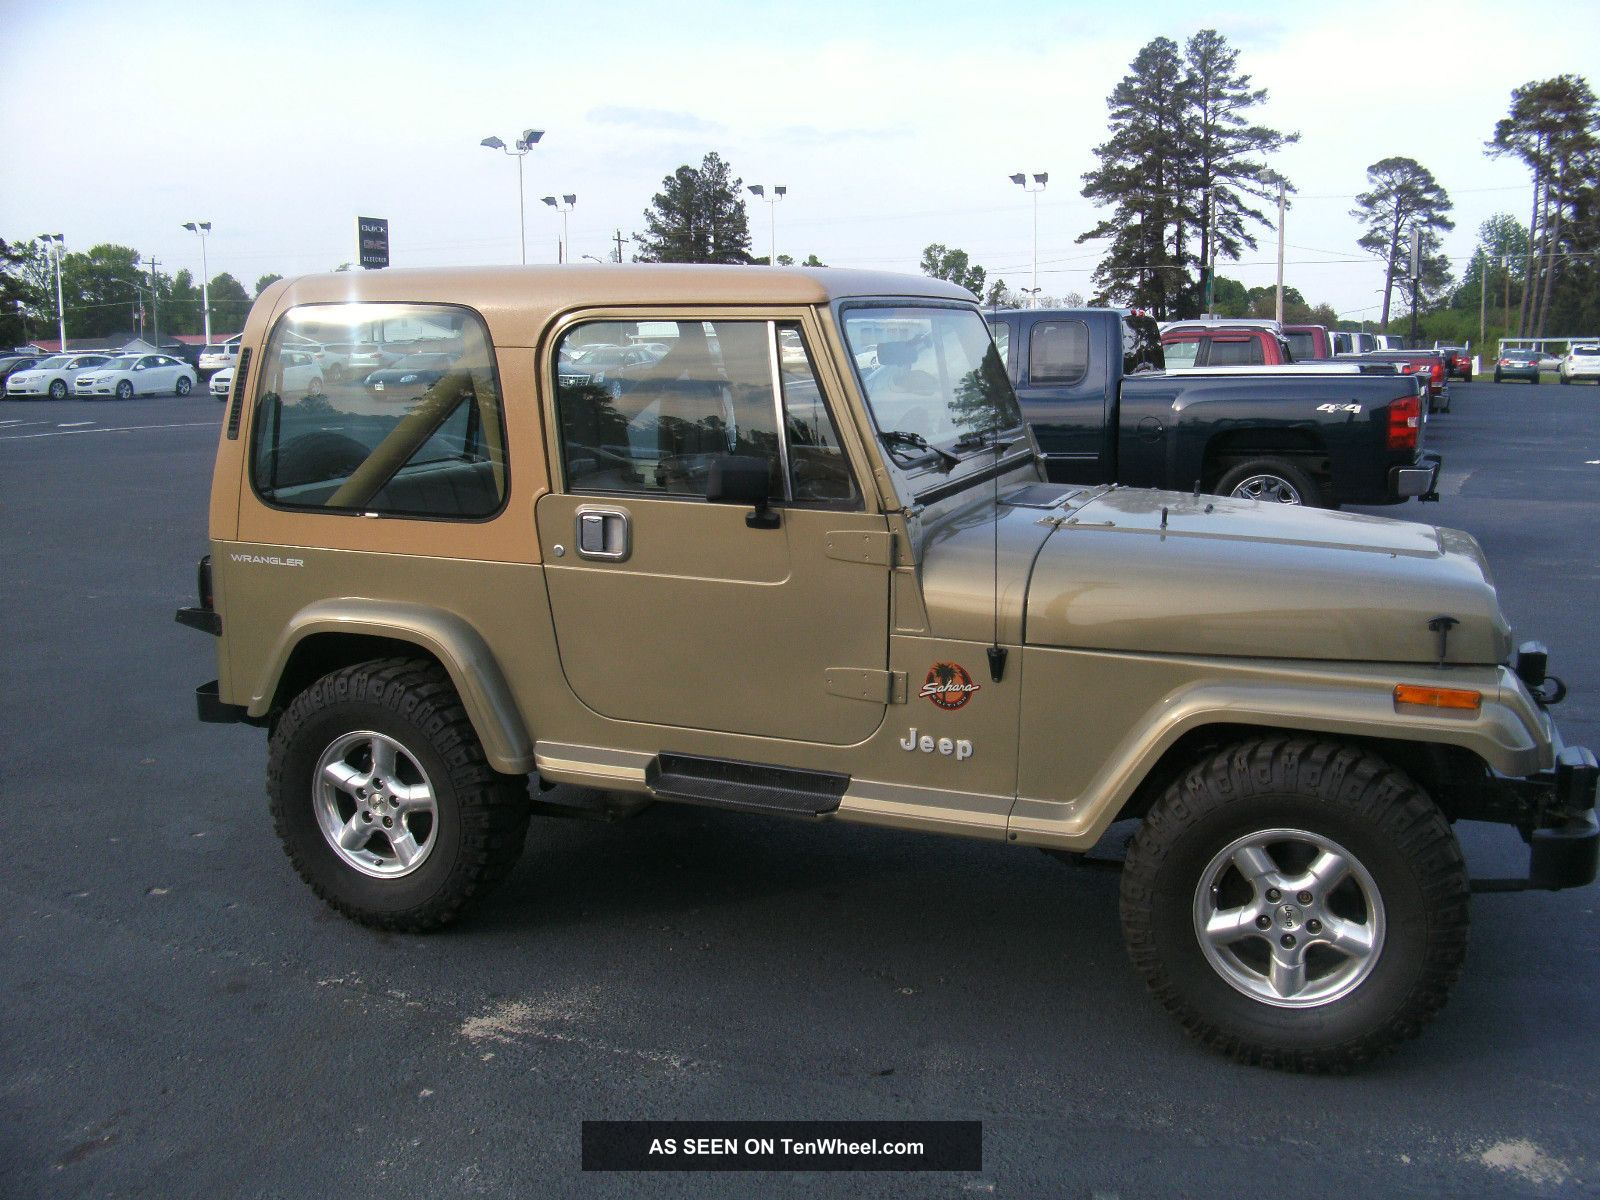 1988 jeep wrangler 4wd  6cyl  hard top full hard doors  polished wheels 1979 ford bronco owners manual 1989 ford bronco owners manual pdf